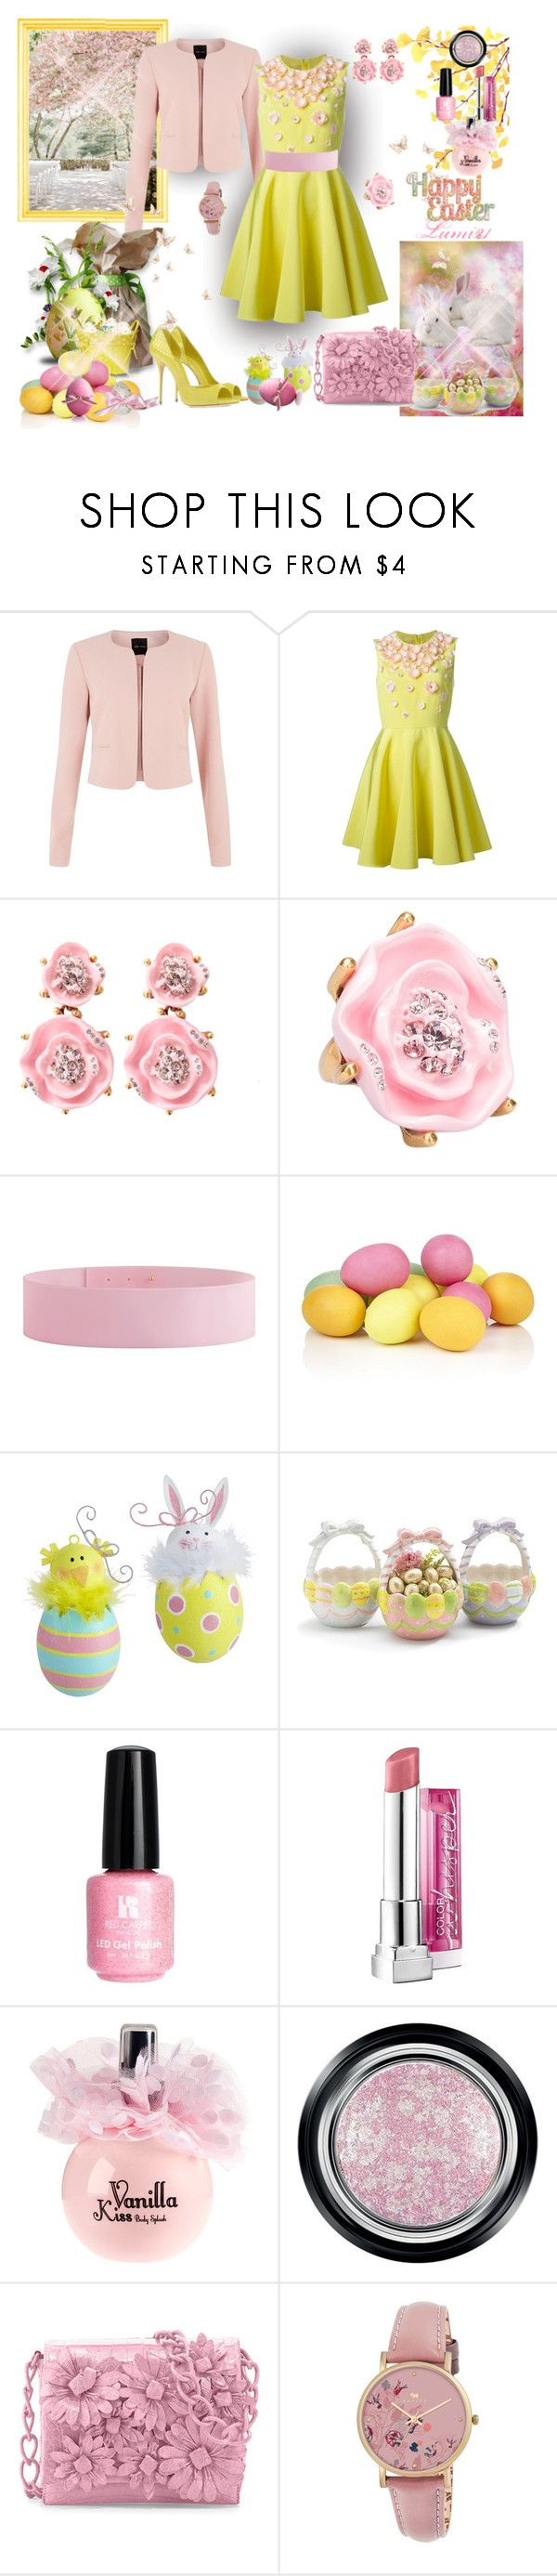 """happy Easter"" by lumi-21 ❤ liked on Polyvore featuring Giambattista Valli, Oscar de la Renta, Burberry, WALL, Harrods, Casadei, Pier 1 Imports, Red Carpet Manicure, H&M and Giorgio Armani"